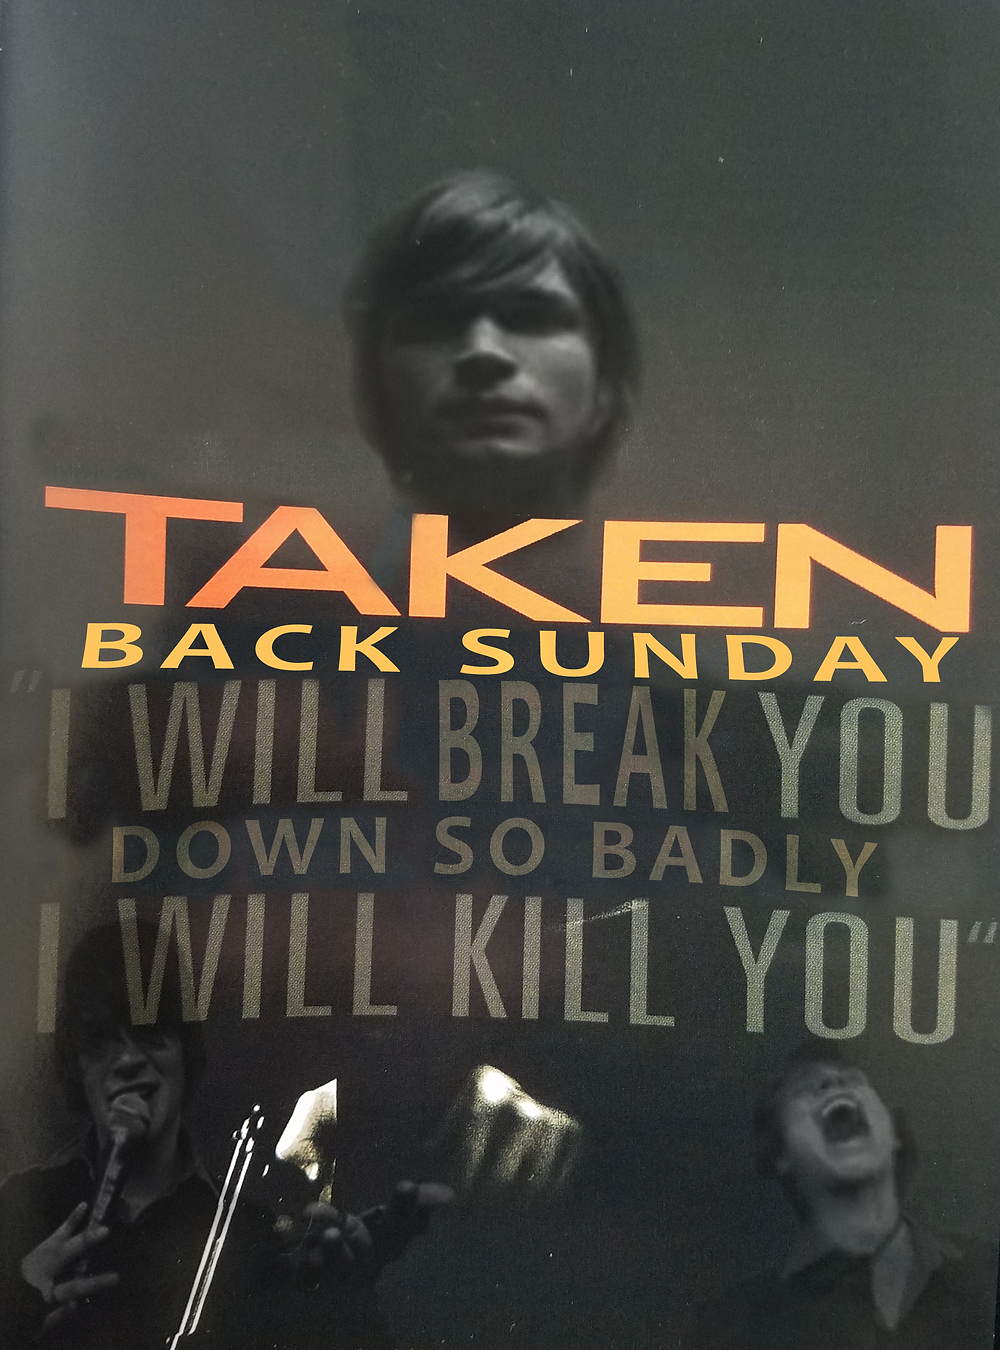 Adam Lazzara poses on the original Taken movie poster